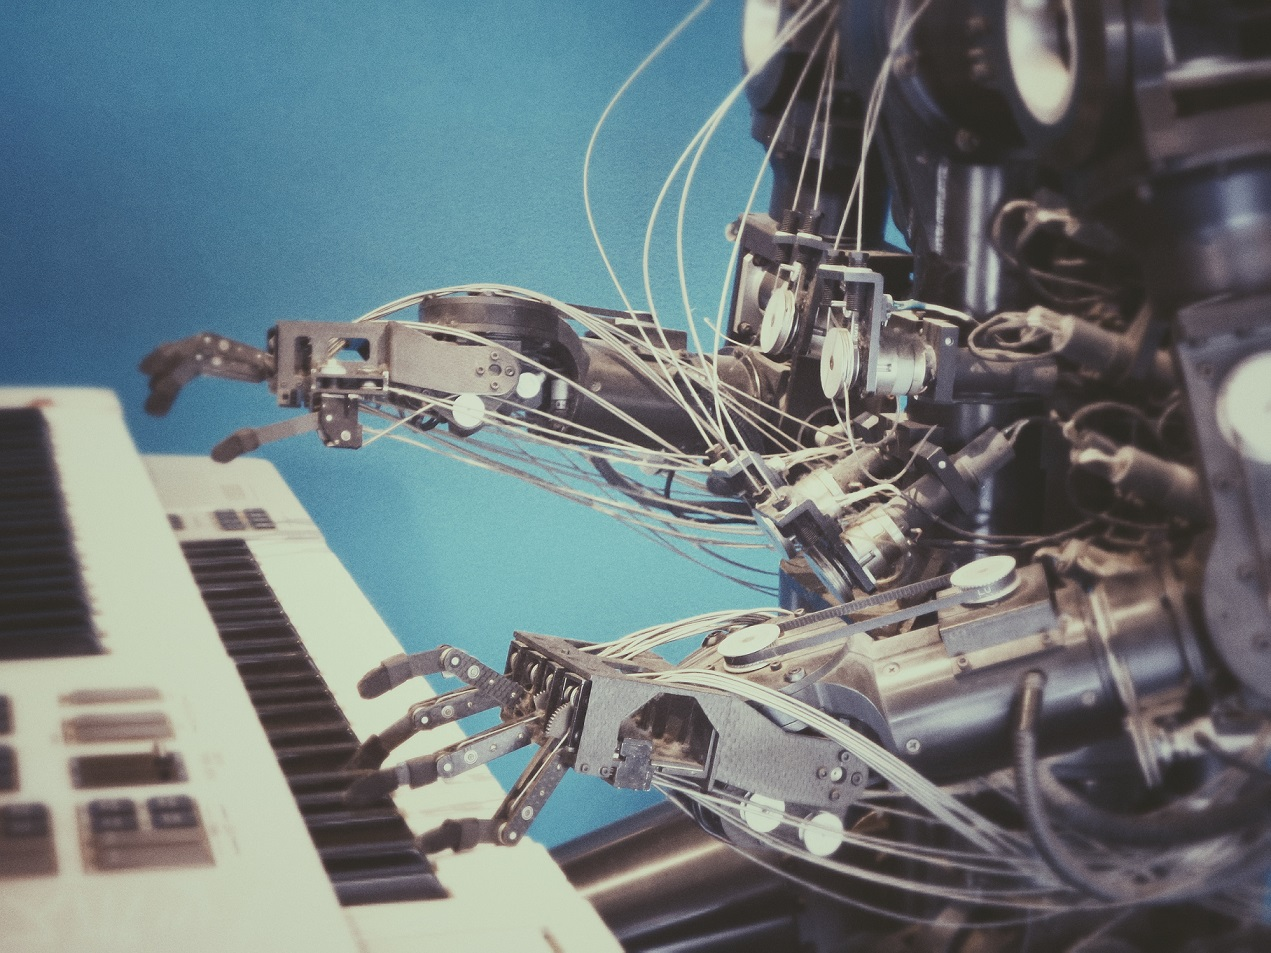 A robot playing the piano.